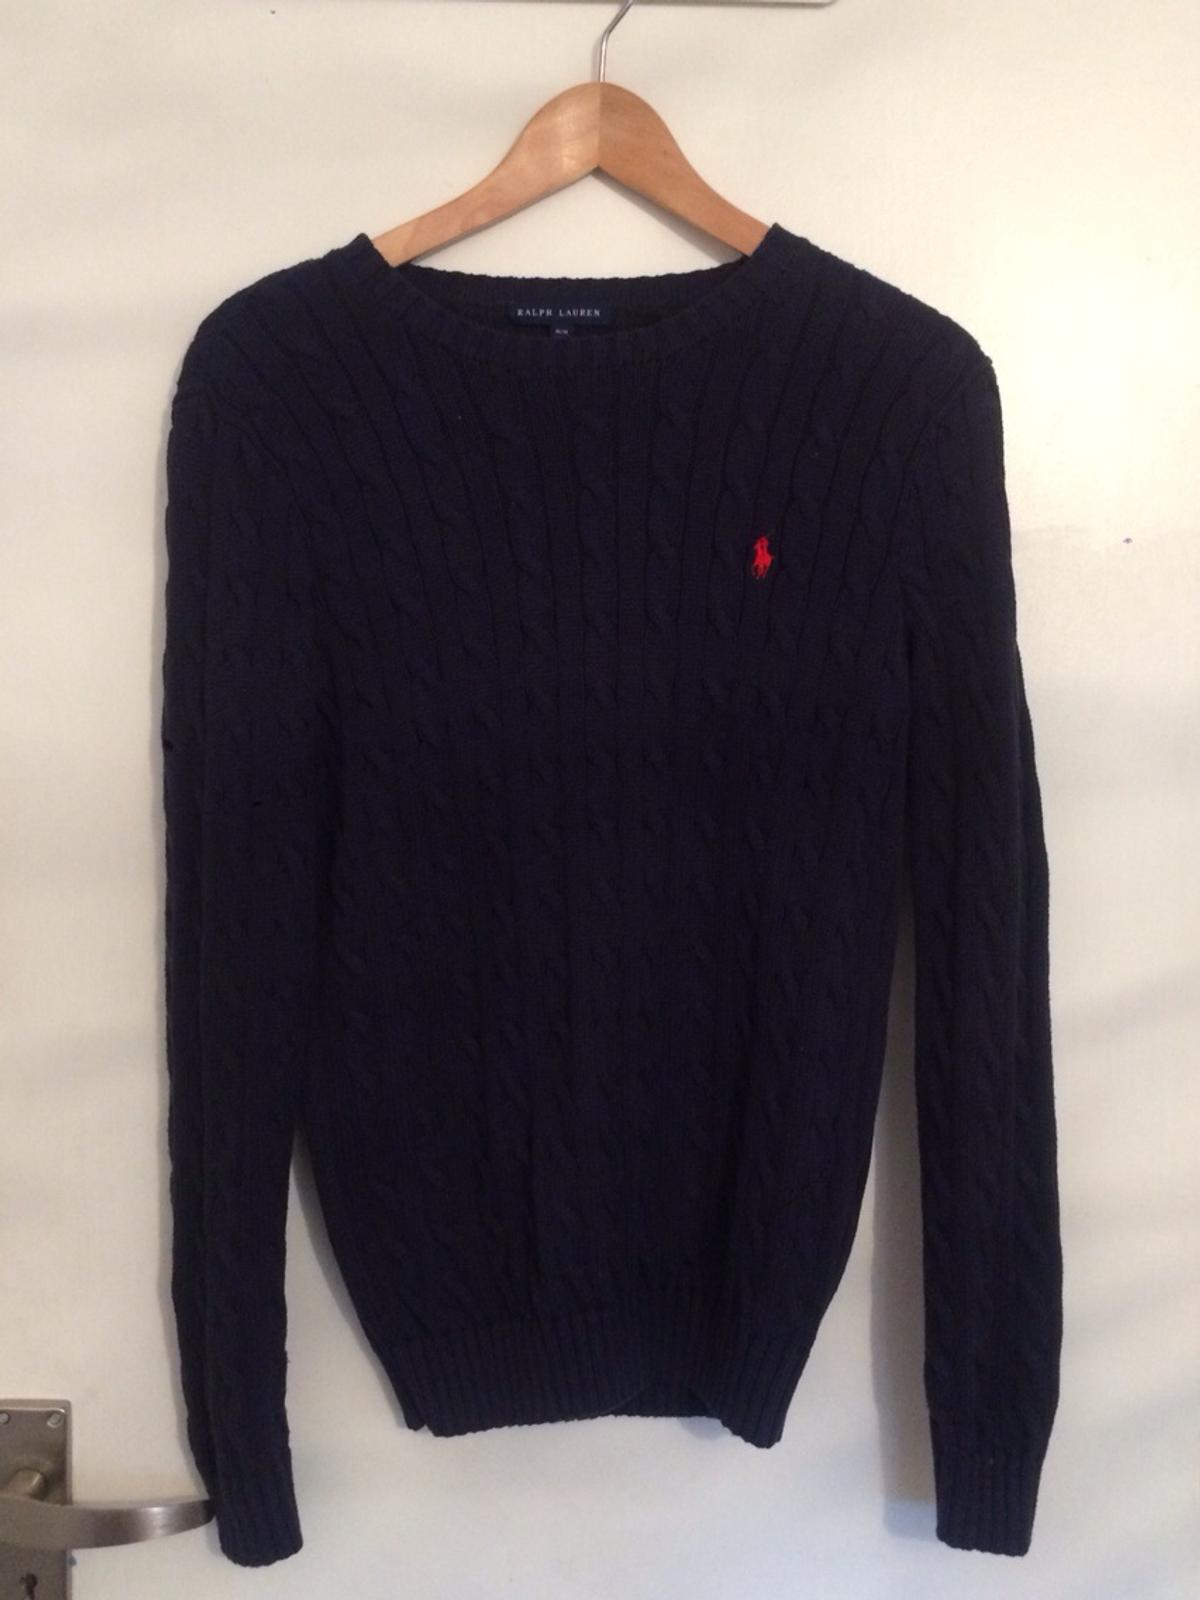 64db59836fb0dd Polo Ralph Lauren Cable Knit jumper in W9 London for £25.00 for sale ...